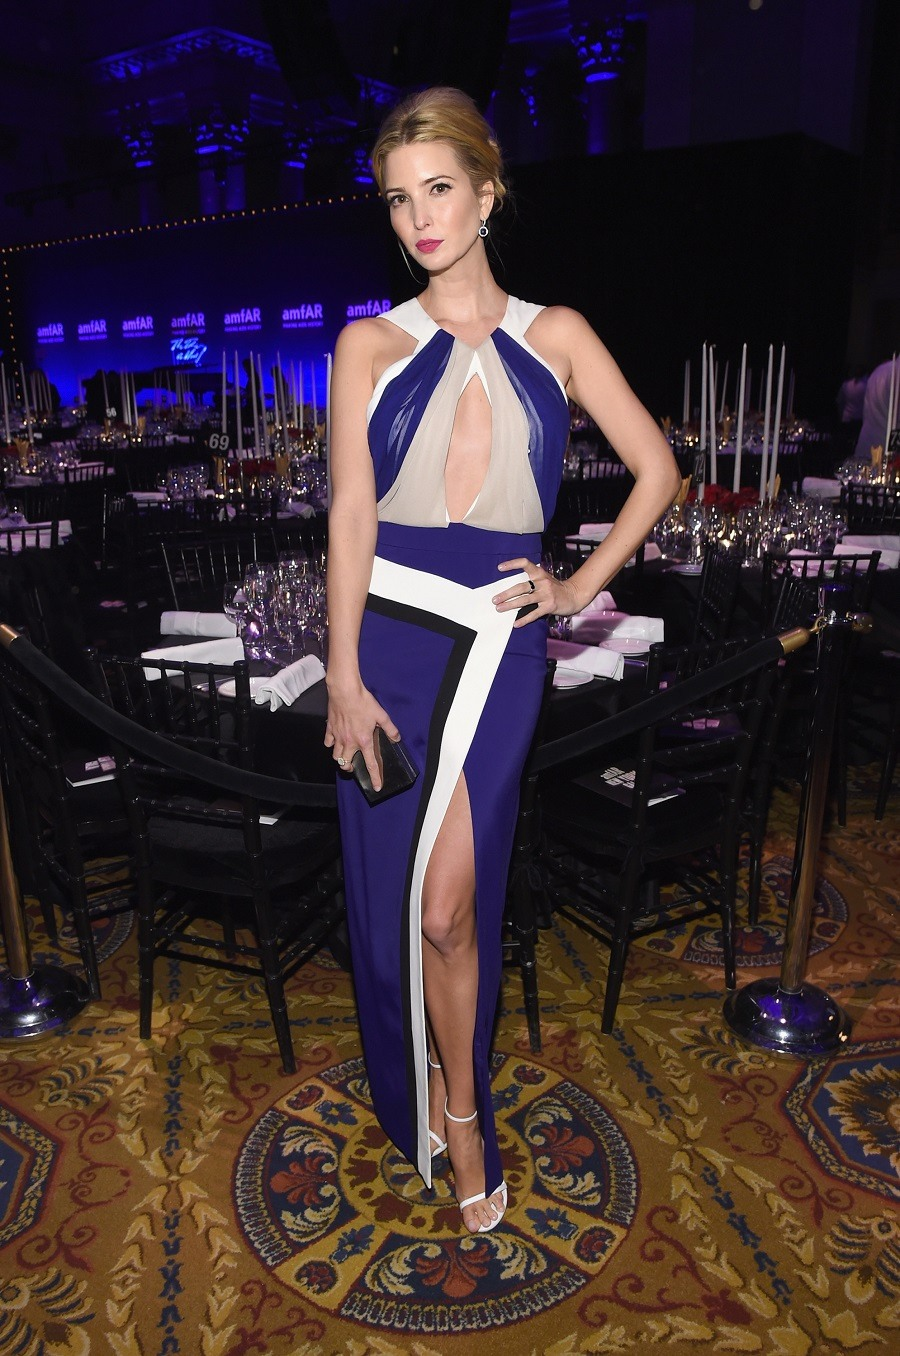 Ivanka Trump attends the 2015 amfAR New York Gala at Cipriani Wall Street